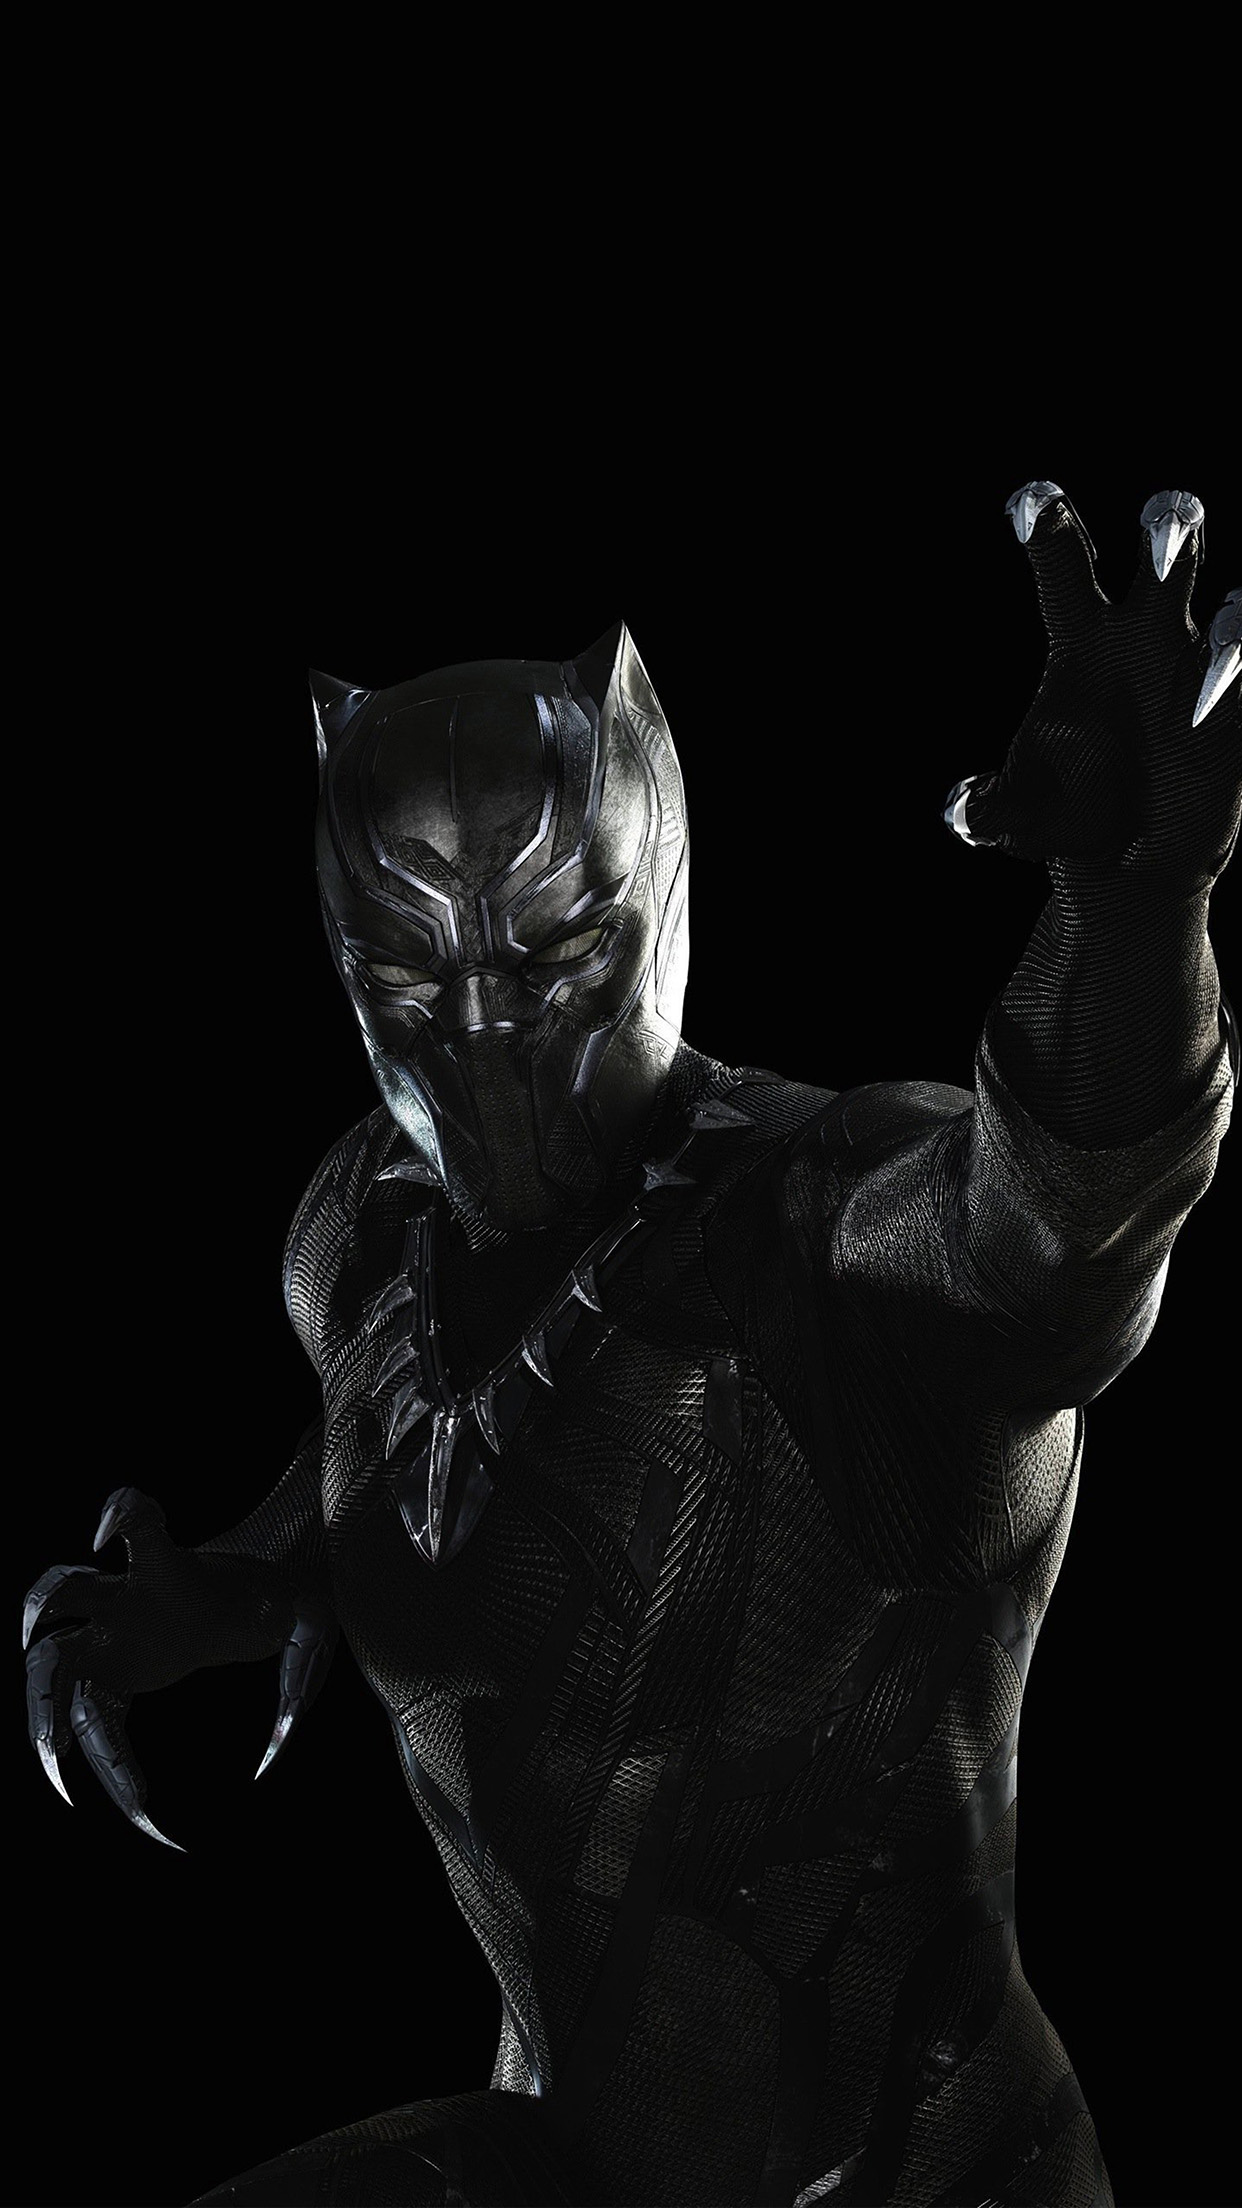 iphone6papers | iphone 6 wallpaper | bd89-black-panther-marvel